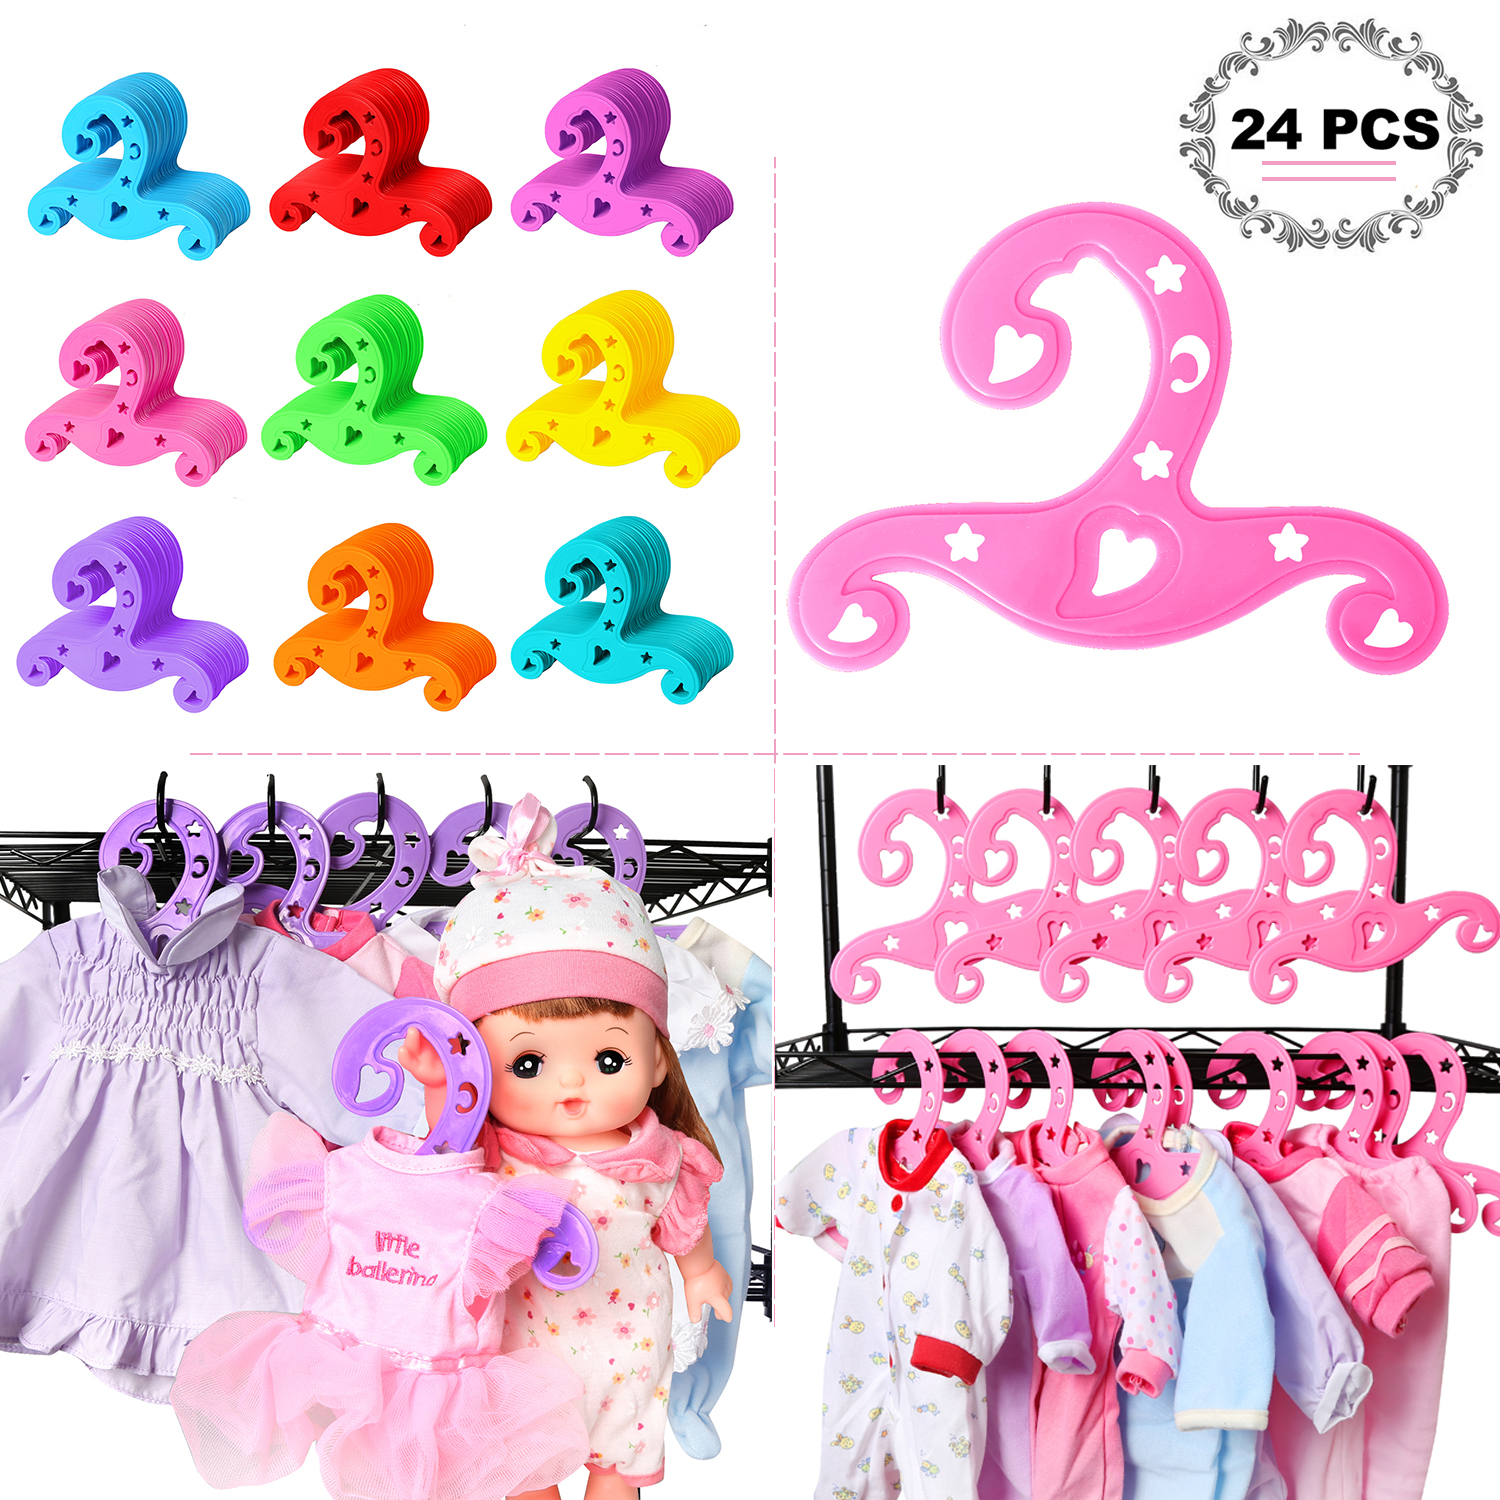 LOT OF 12 OUTFIT HANGERS FIT AMERICAN GIRL DOLLS